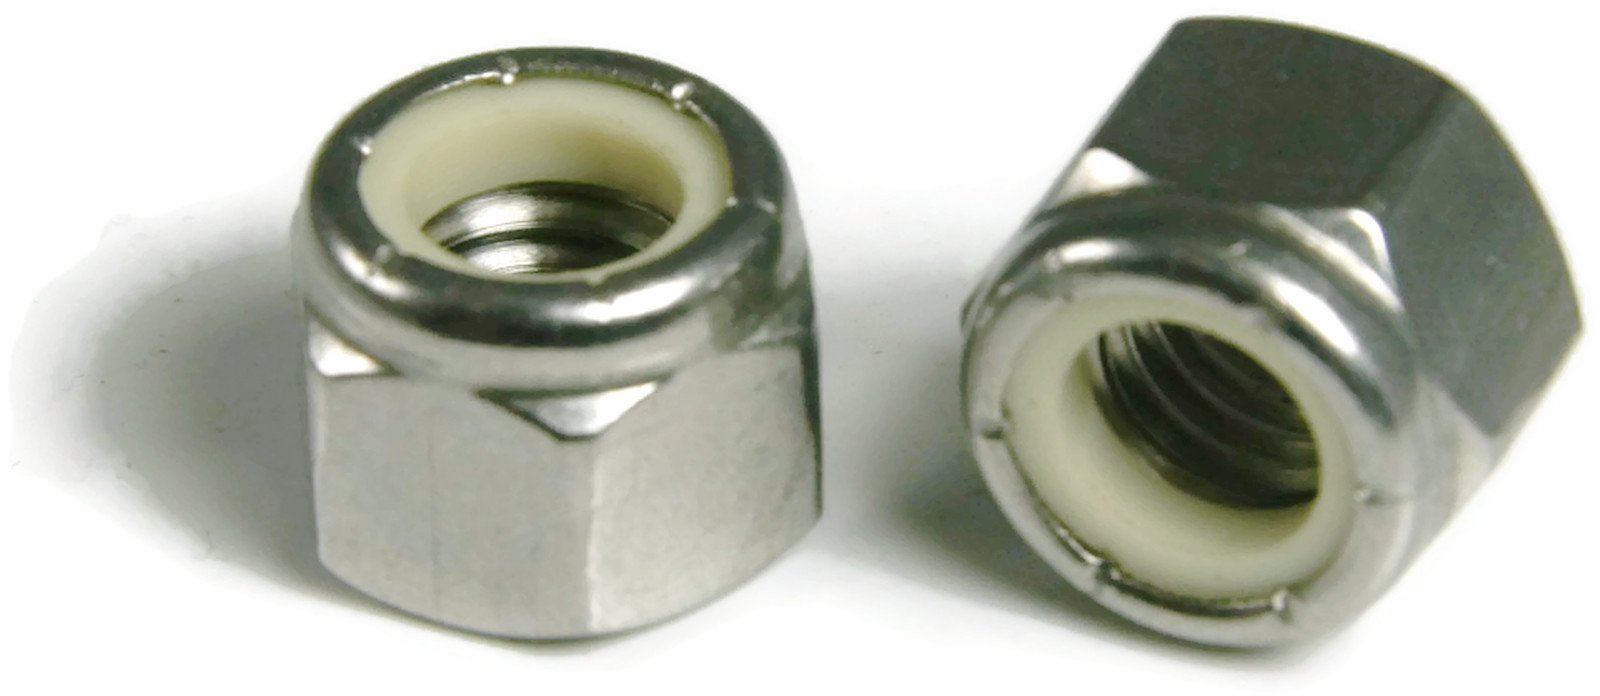 Nylon Lock Nut Nylock 18-8 Stainless Steel - 5/16-18 (.502 Flats x .250 Height) Qty-100